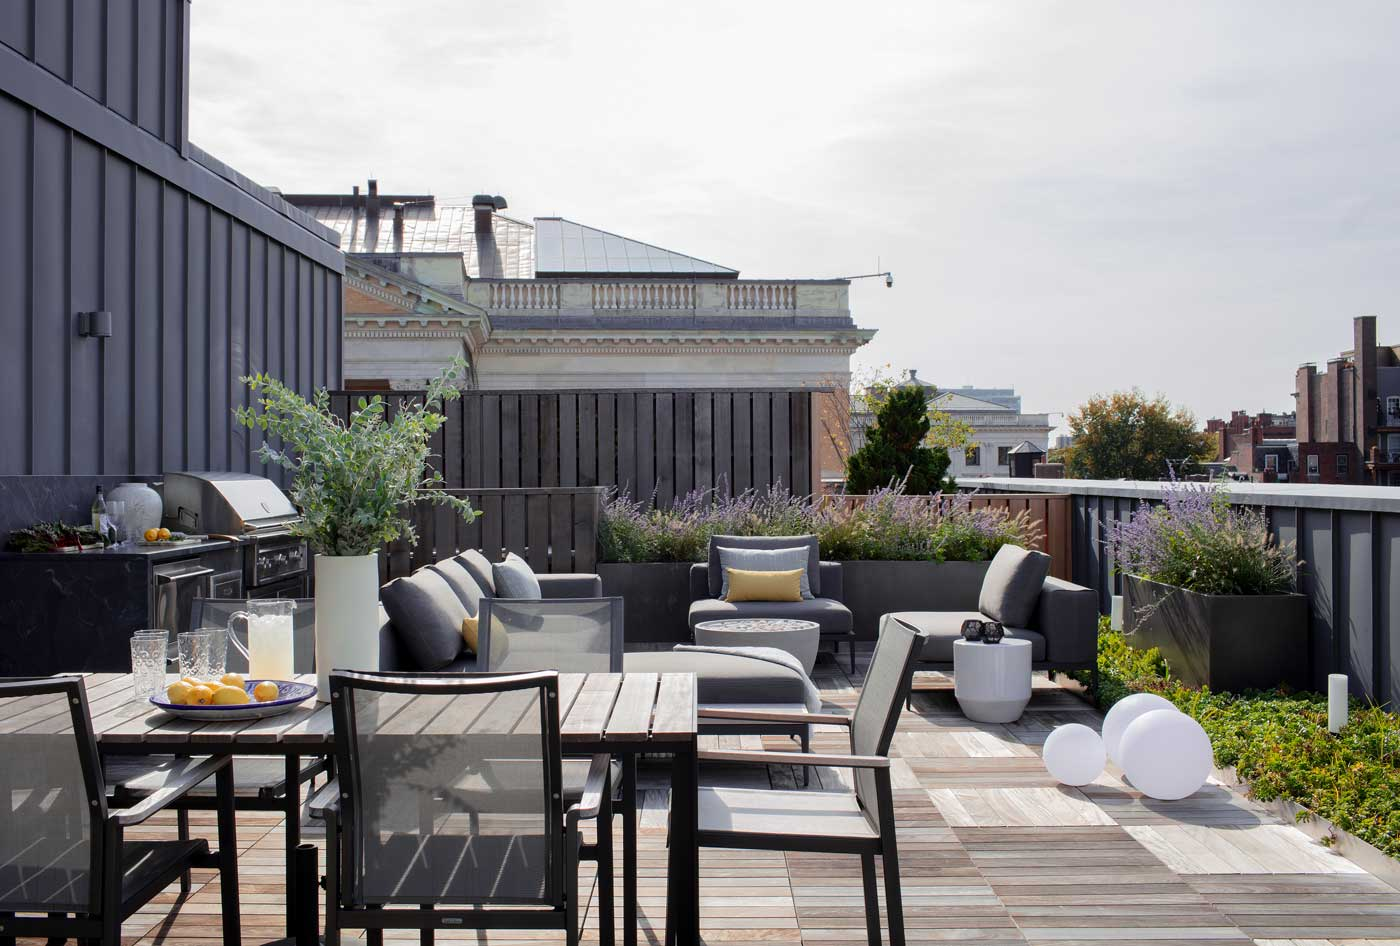 Rooftop deck dining area